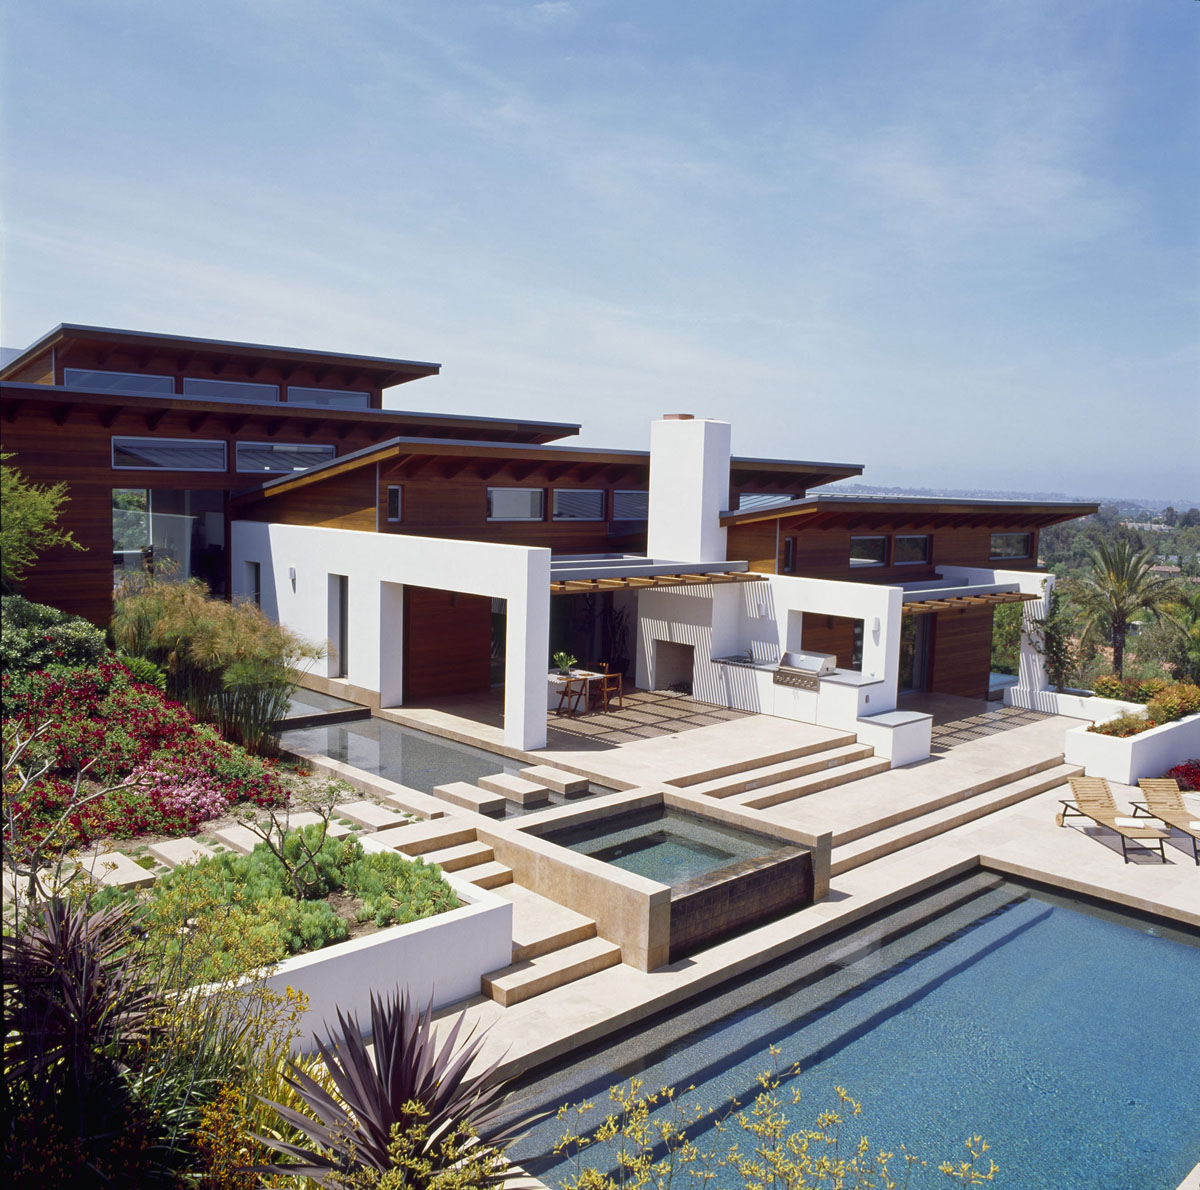 Timeless architectural estate in rancho santa fe for Luxury home designers architects